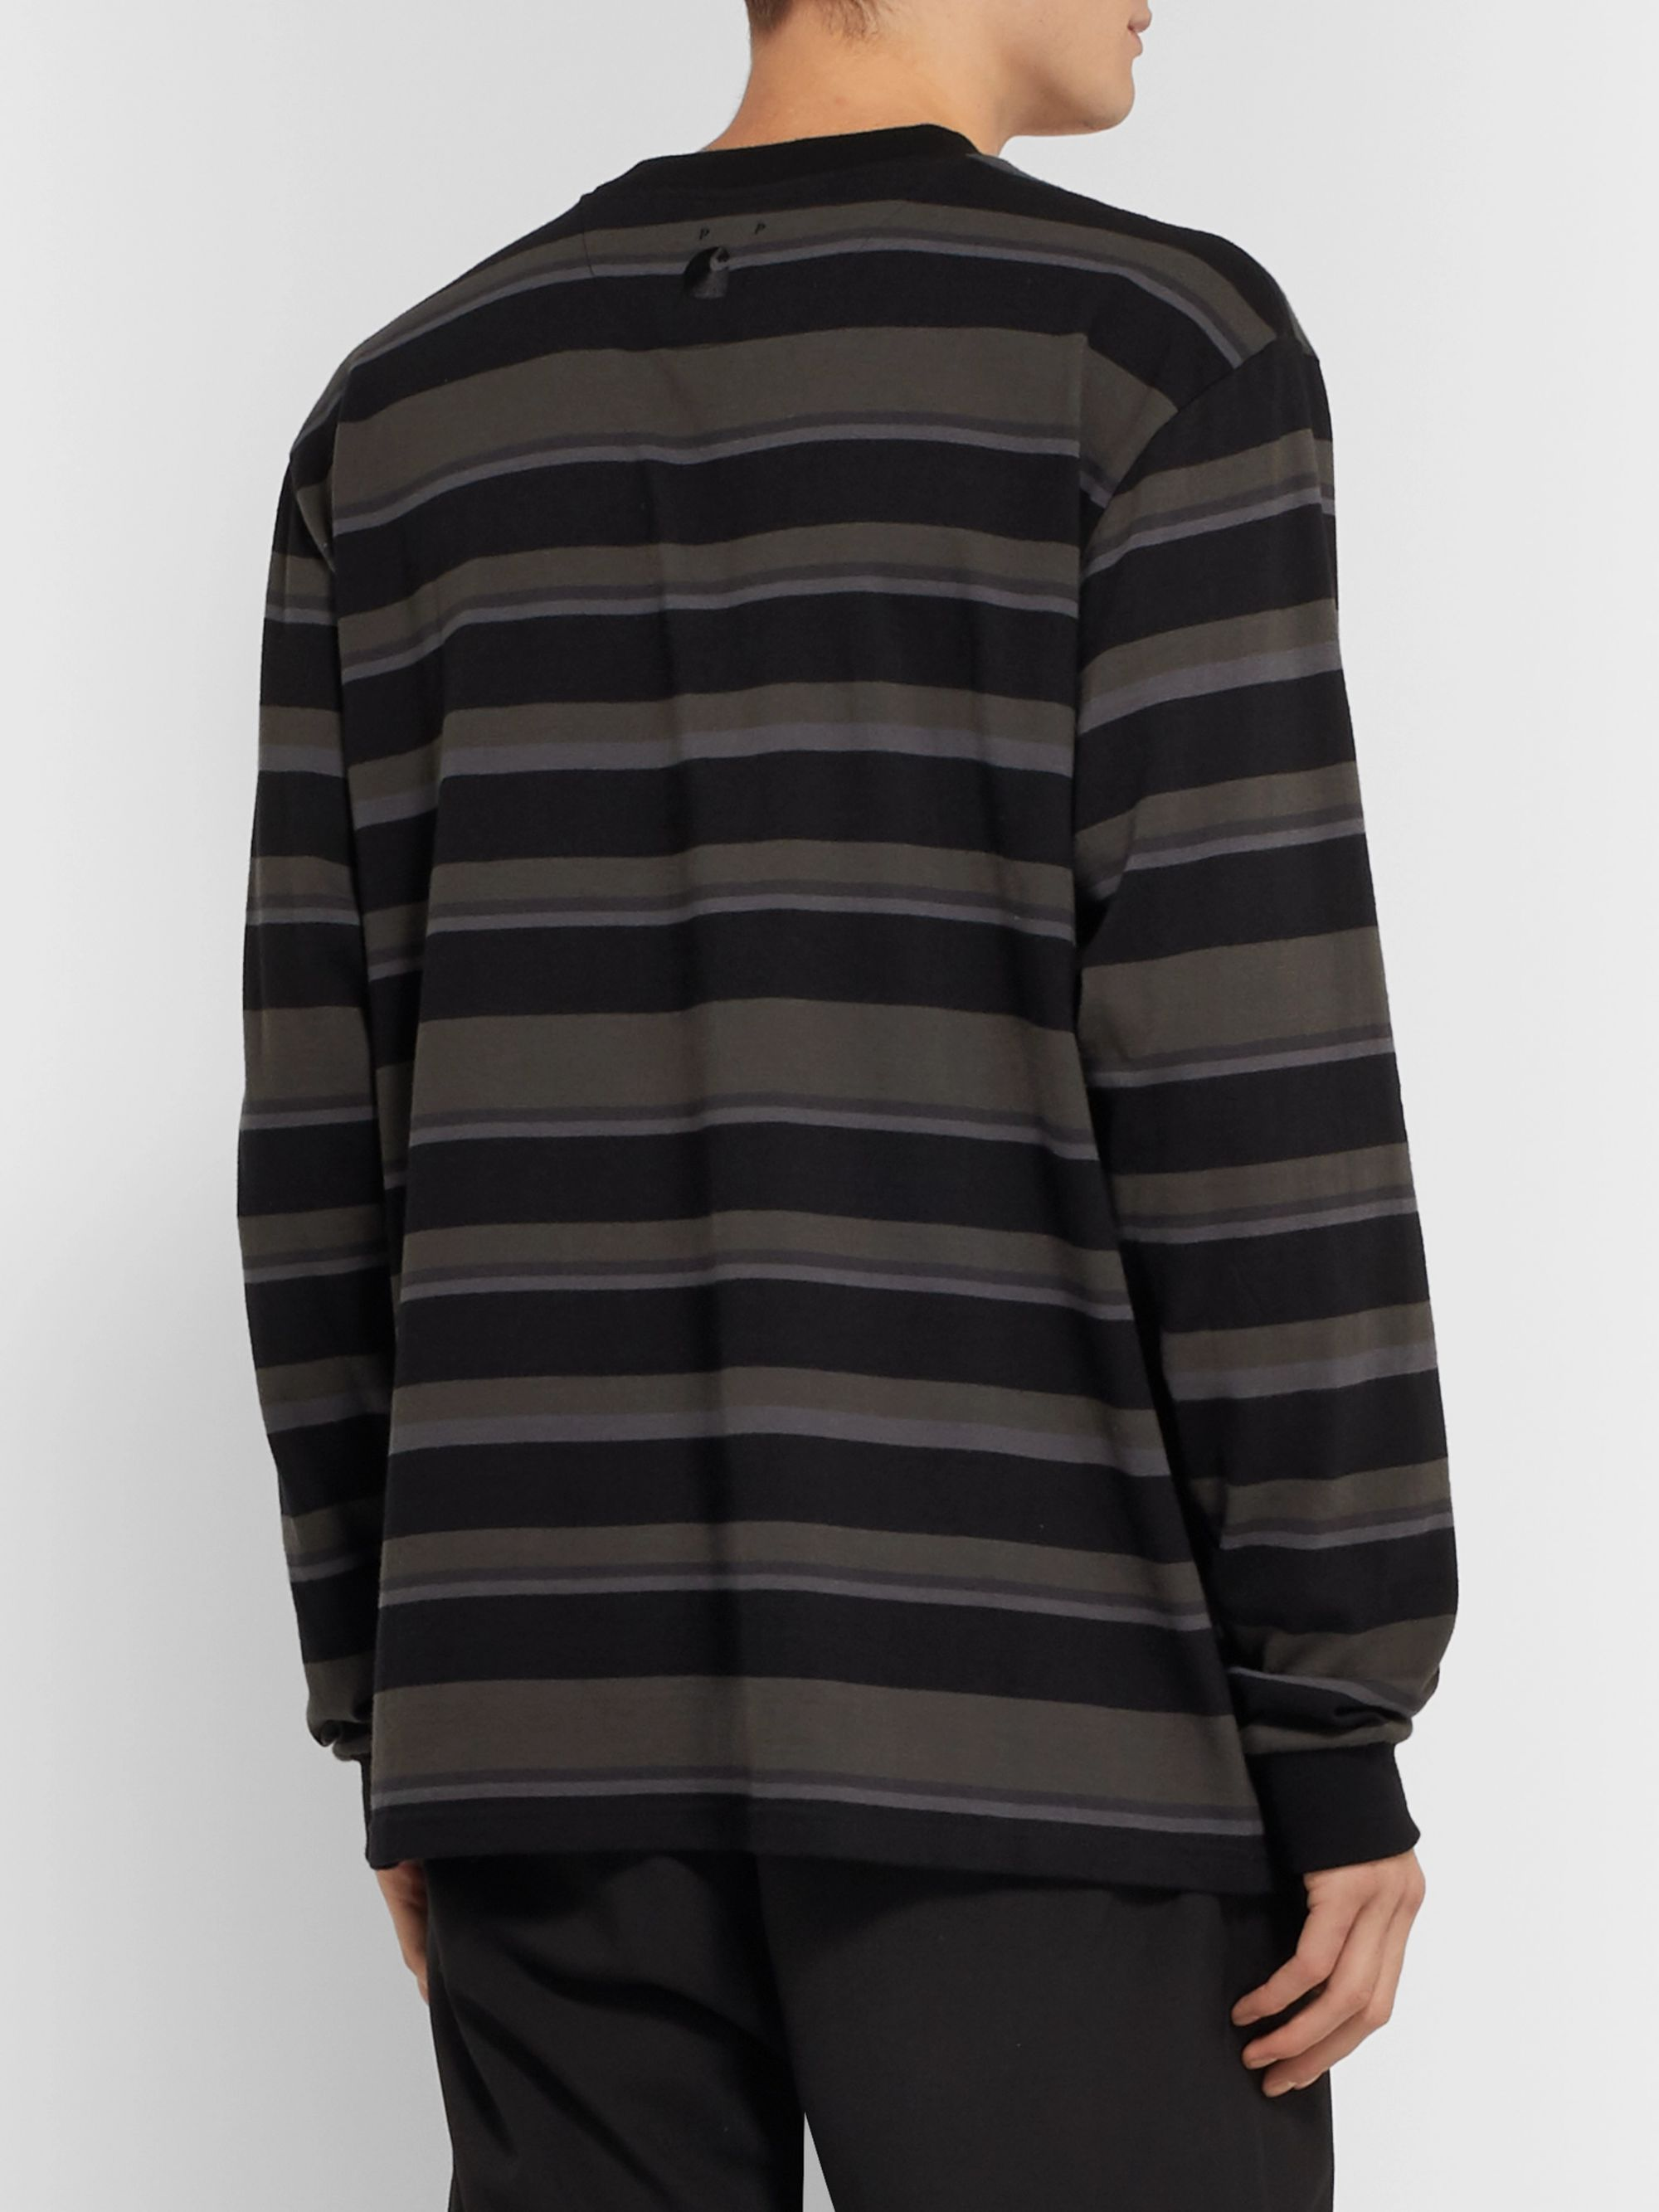 Pop Trading Company + Carhartt WIP Garment-Dyed Striped Cotton-Jersey T-Shirt